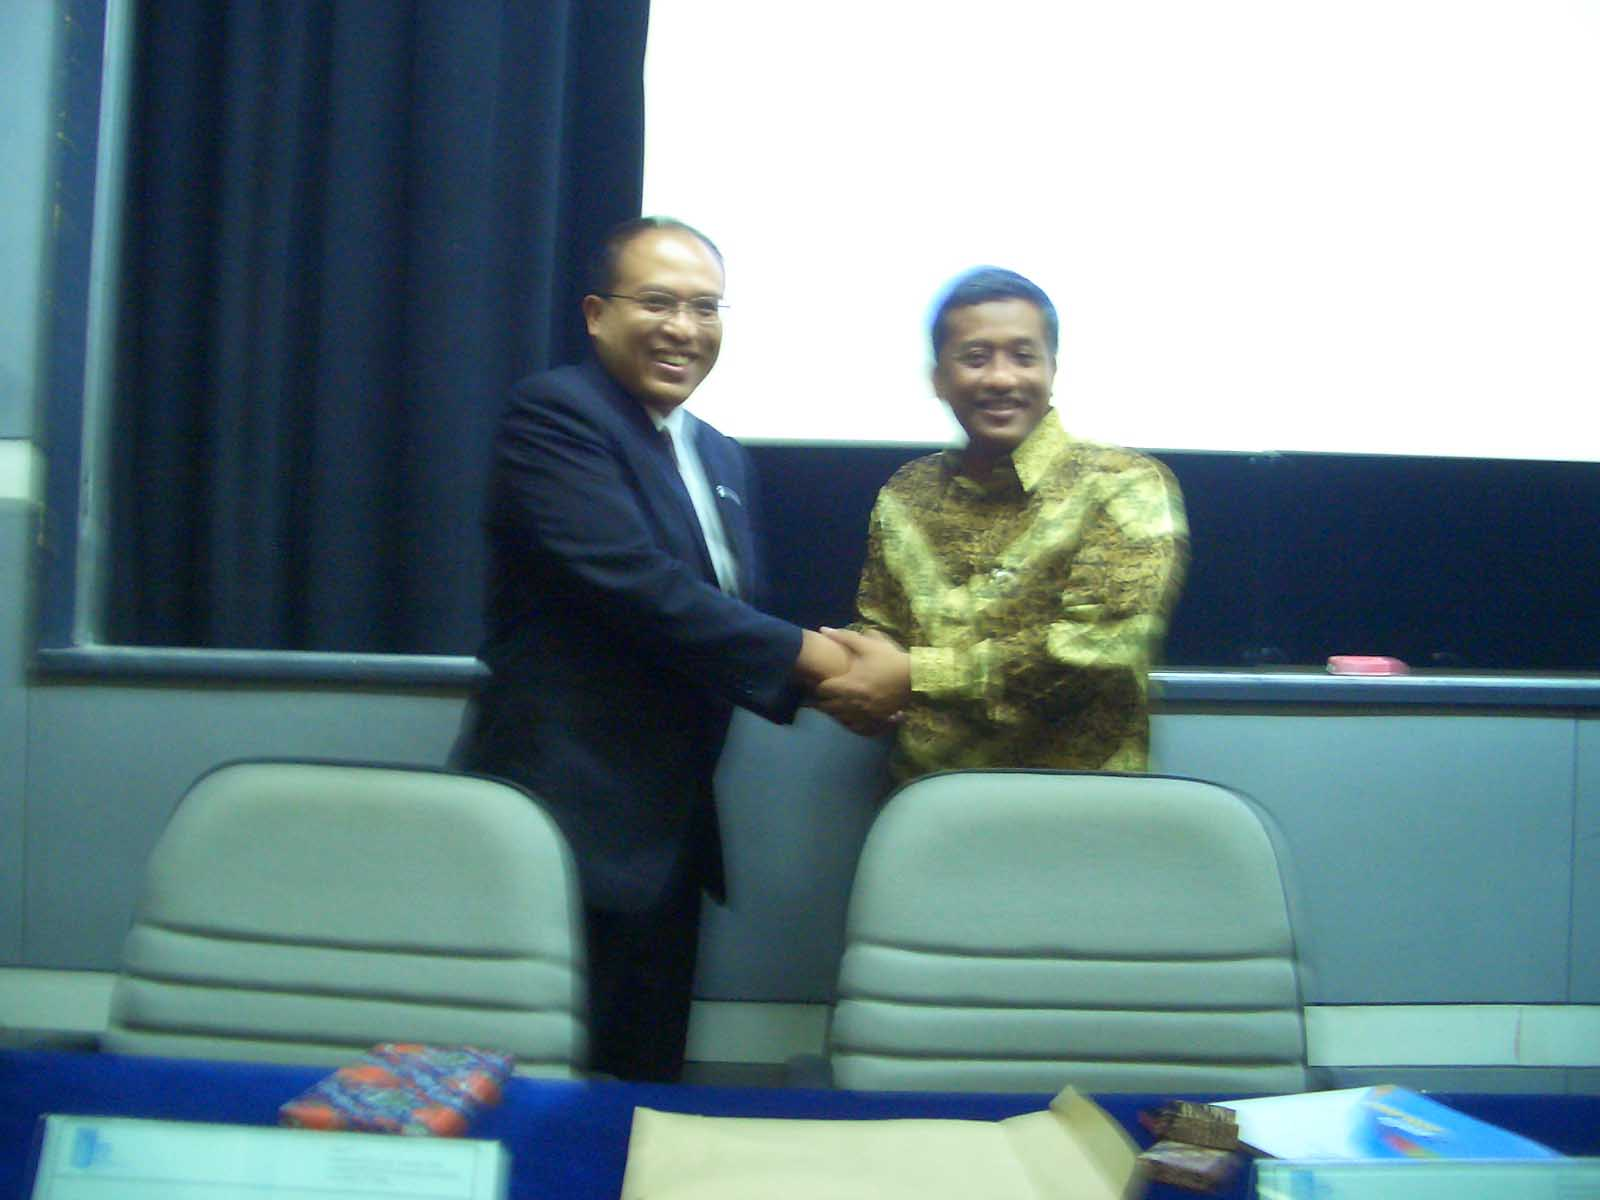 Bandung indonesia lecture - 1 9